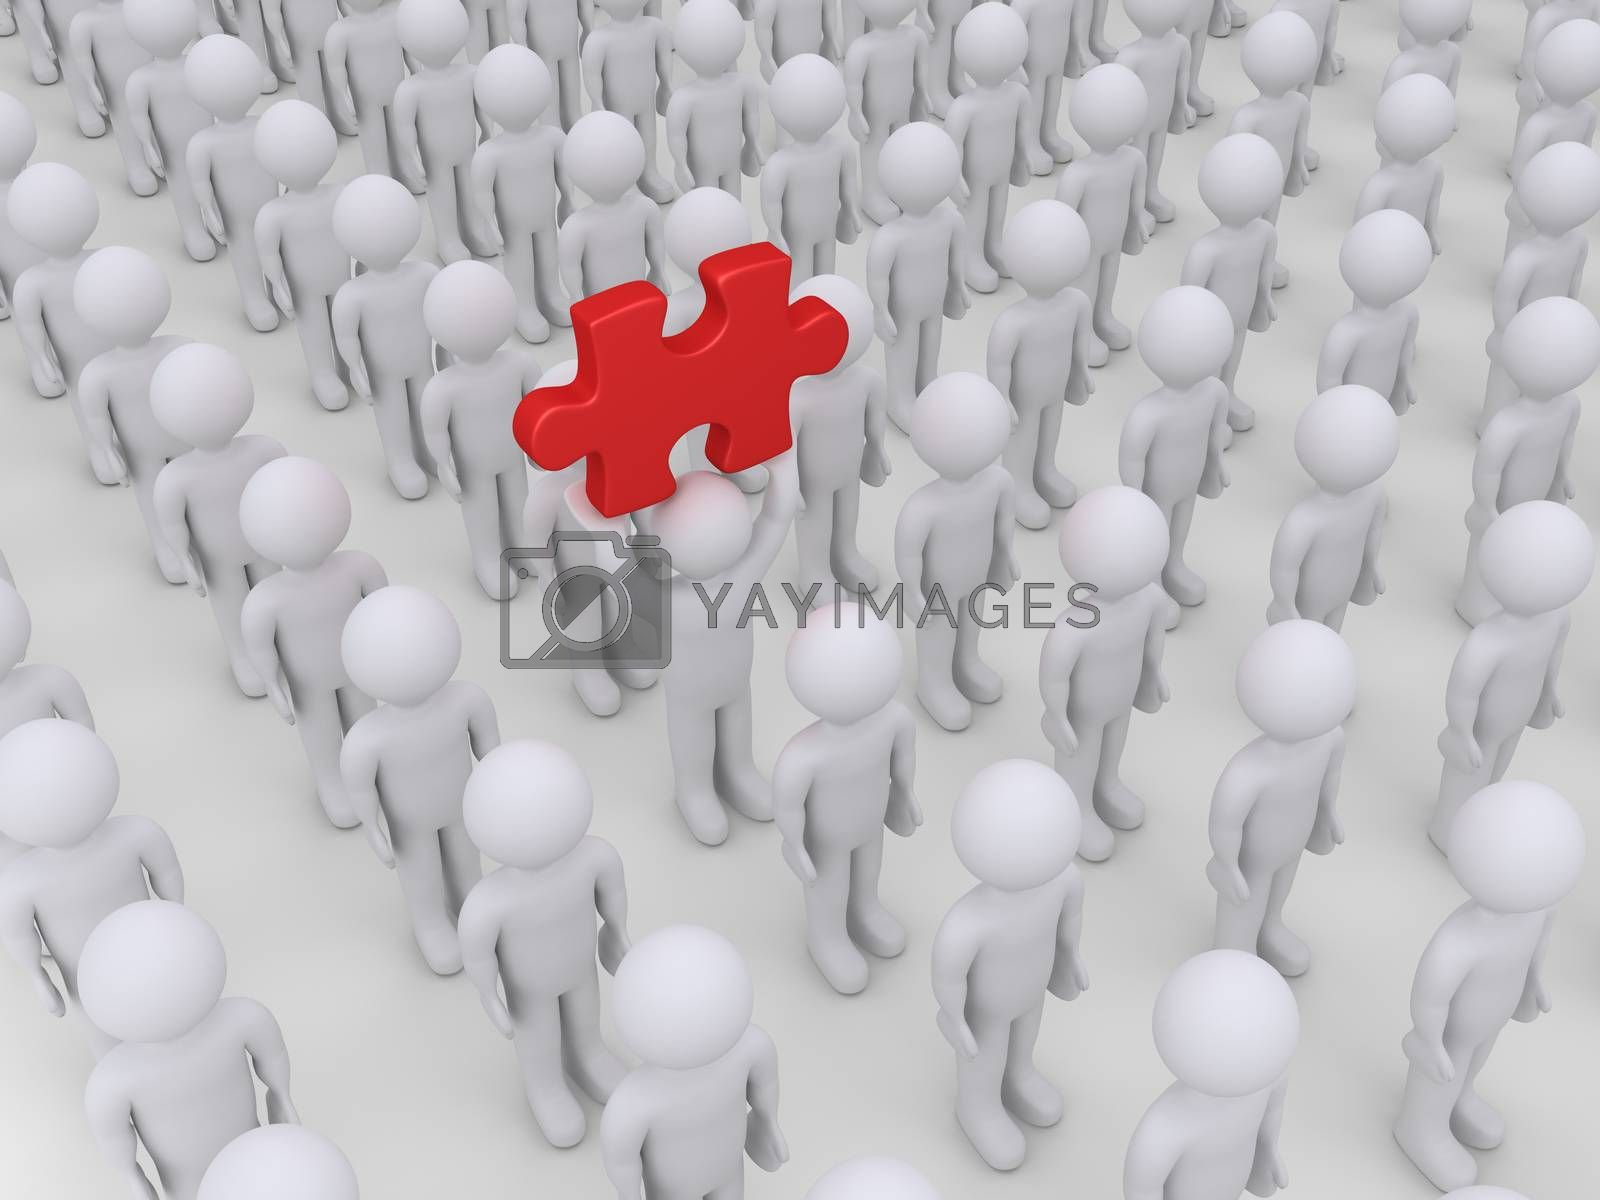 Many people in rows but one is holding high a puzzle piece